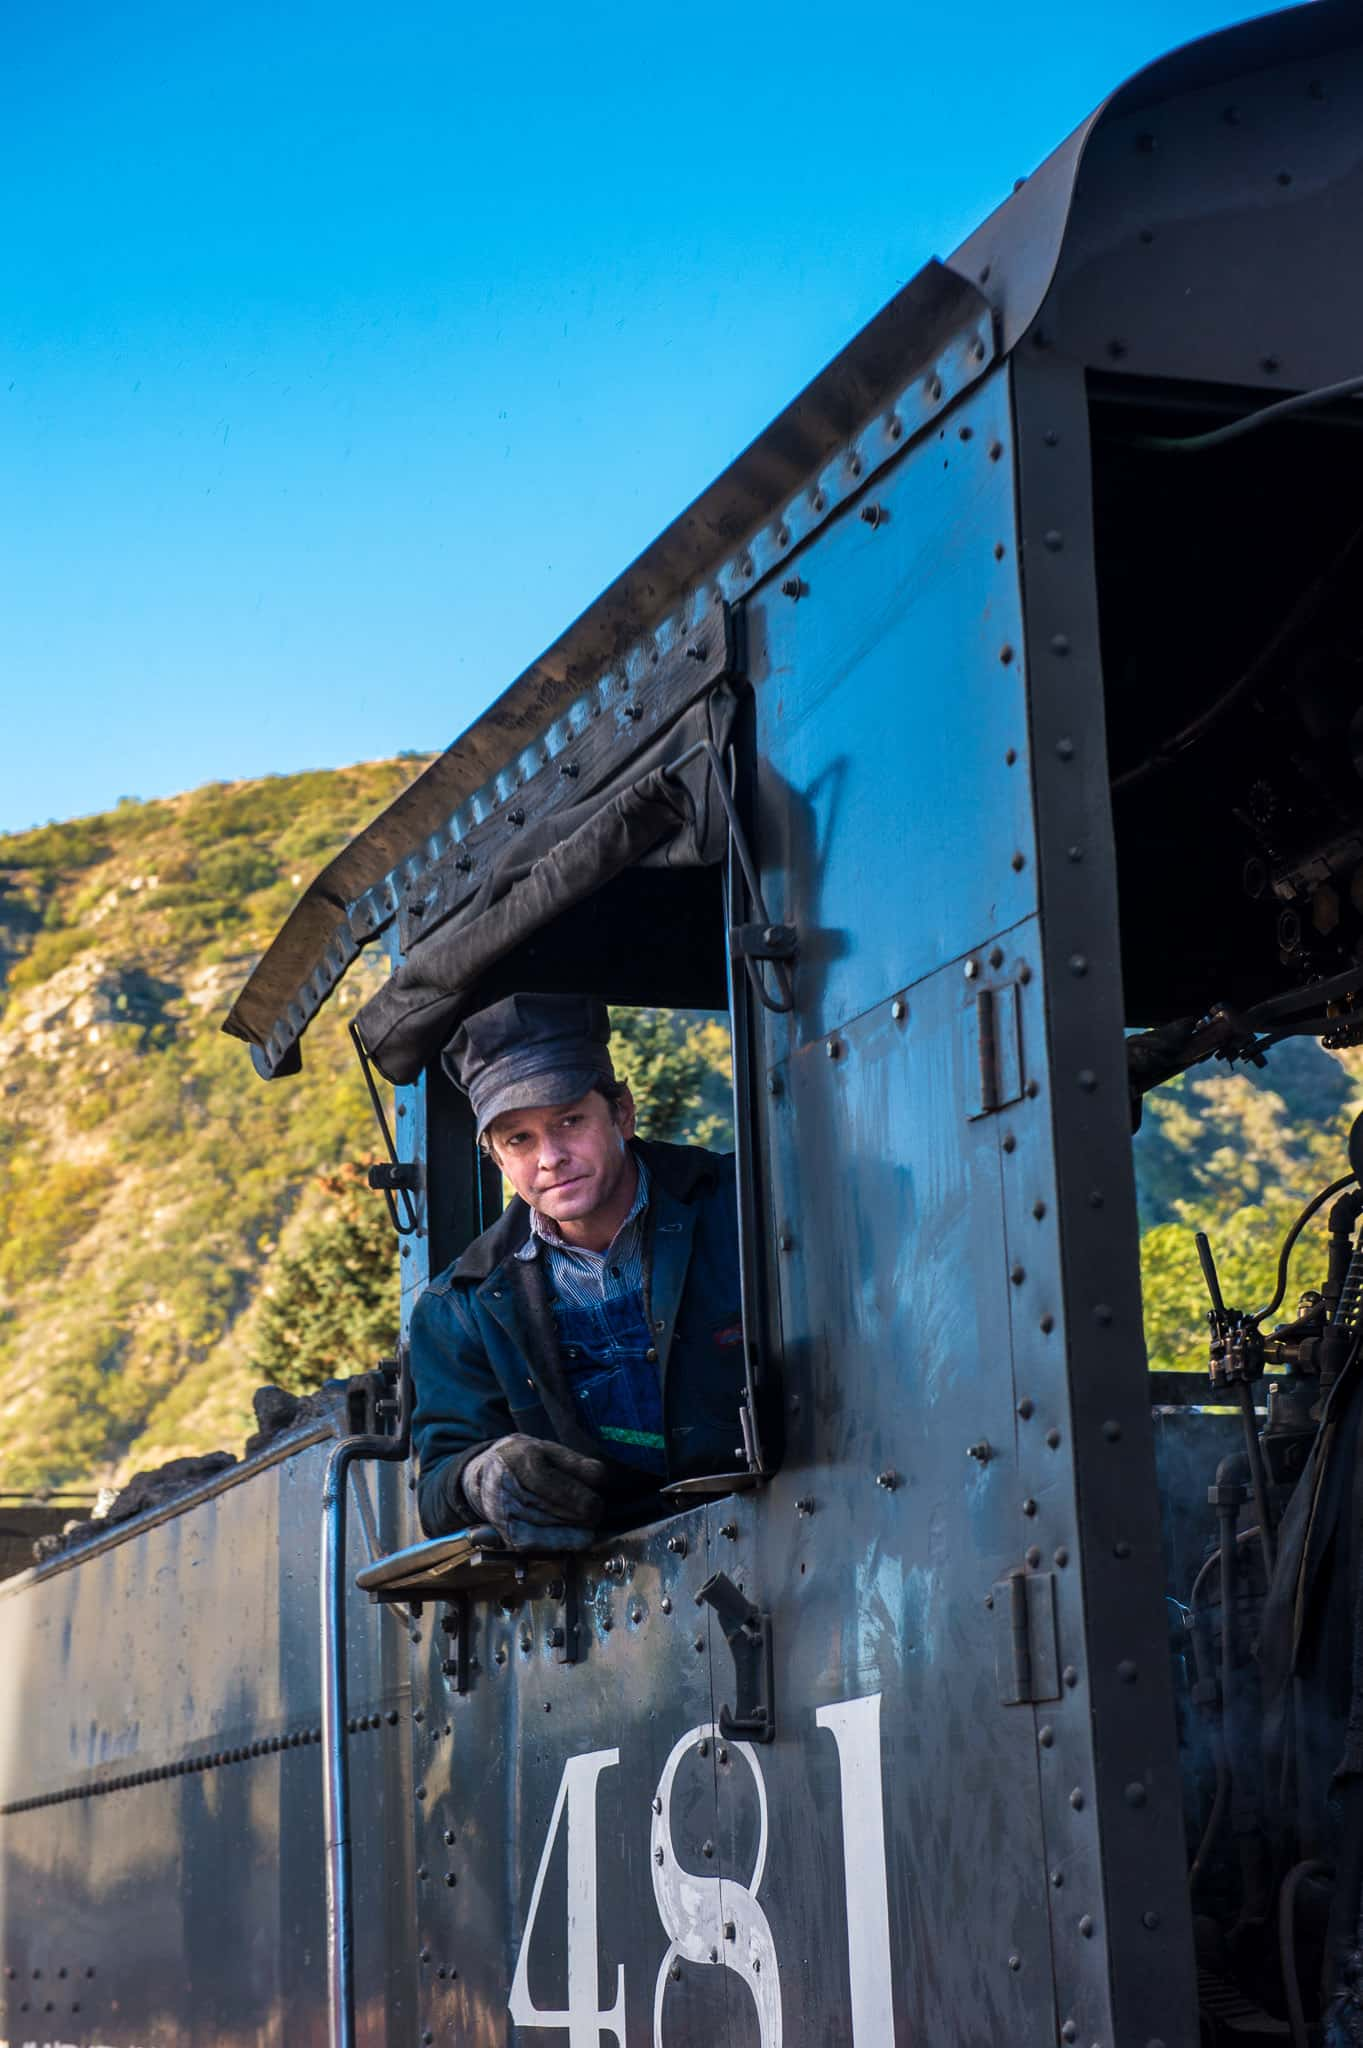 Portrait of the engineer of the Durango & Silverton Photography train as it makes its way along the Animas River between Durango and Silverton, Colorado.